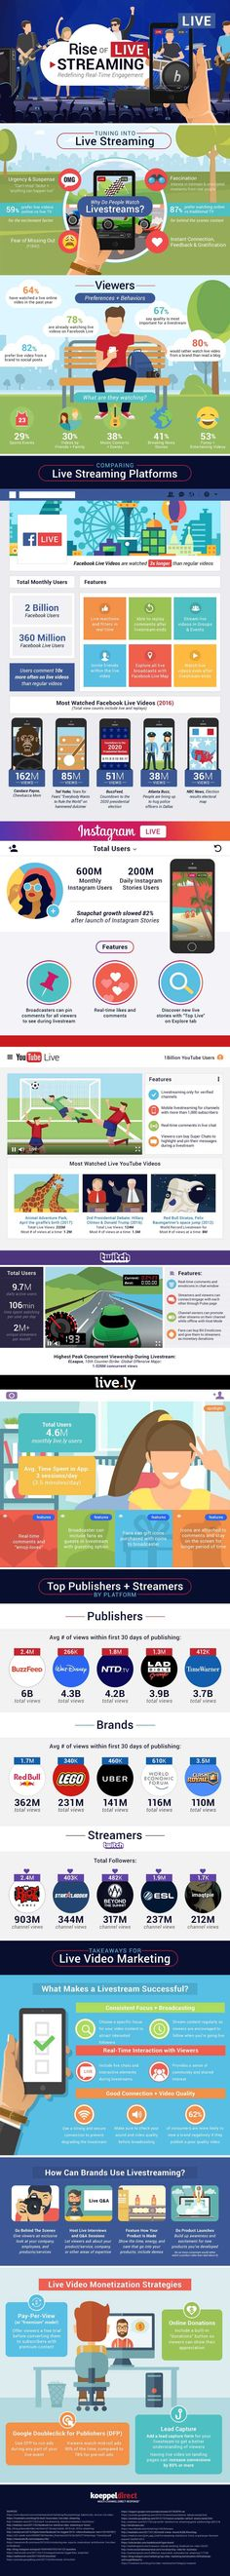 Rise of Live Streaming: Trends & Marketing Tips